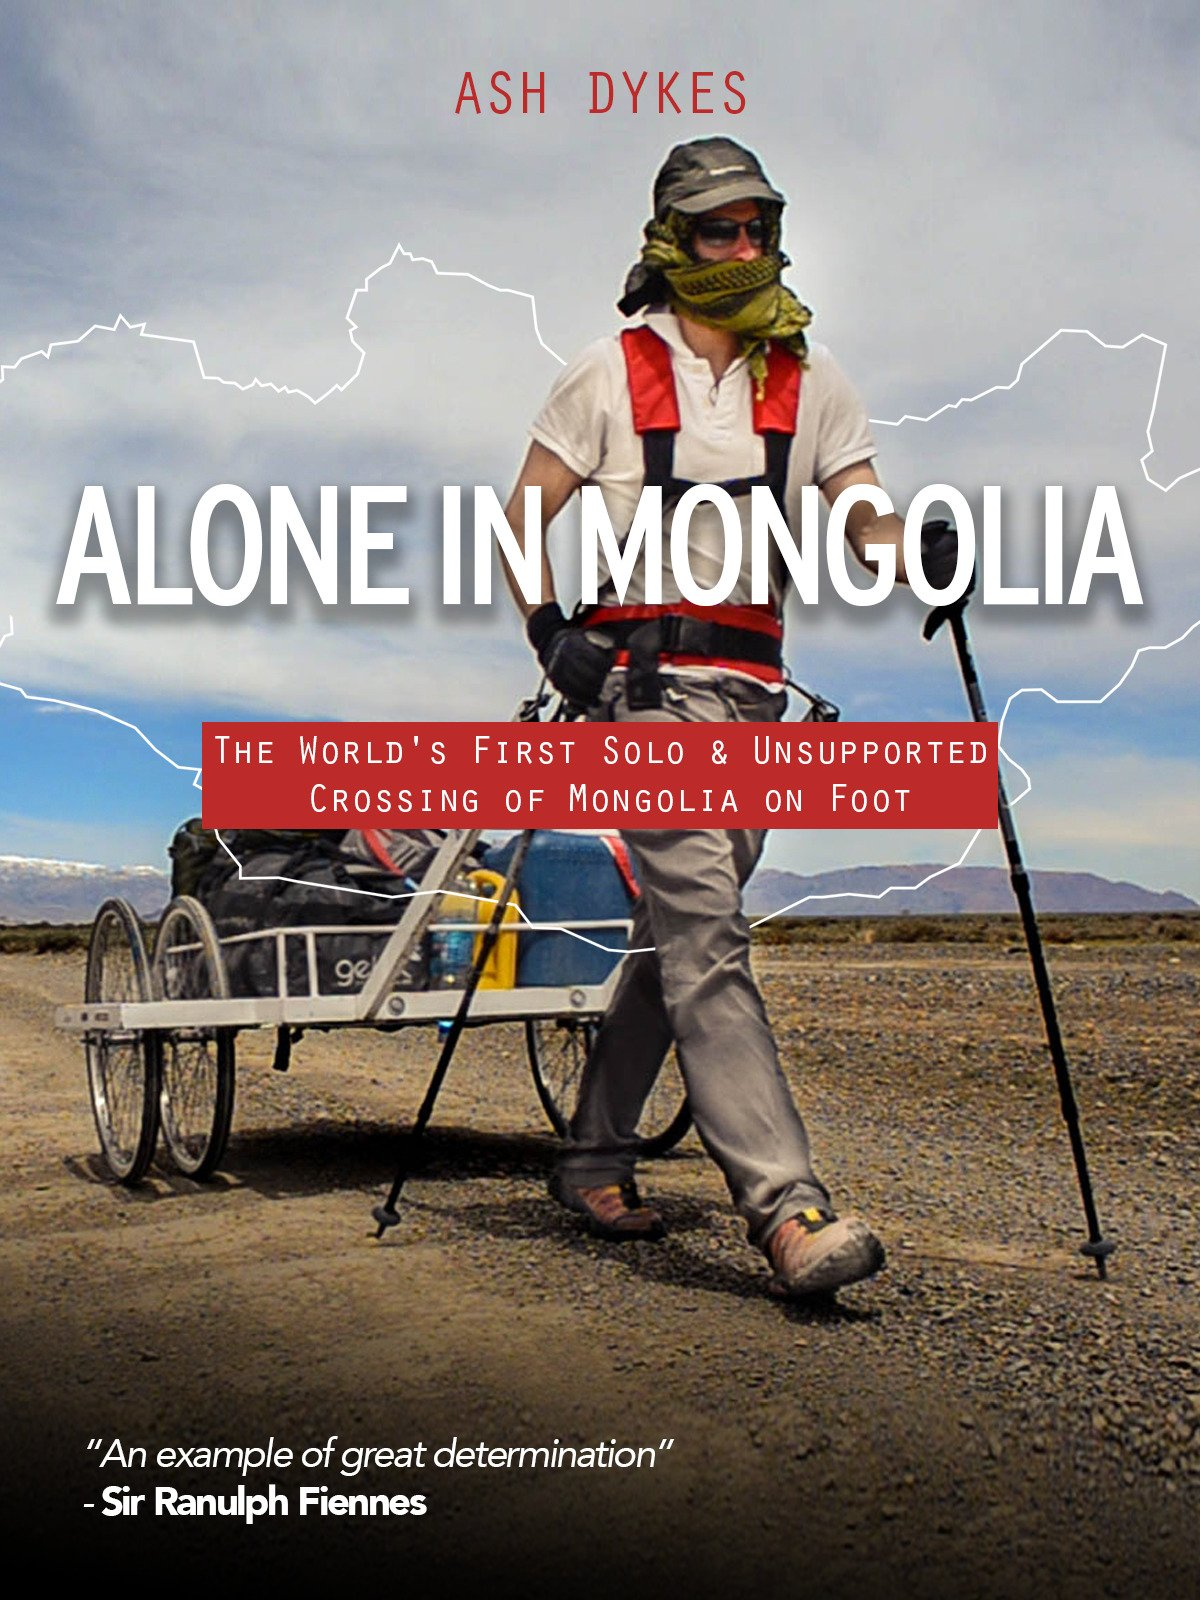 Alone In Mongolia: The World's First Unsupported Crossing of Mongolia on Foot